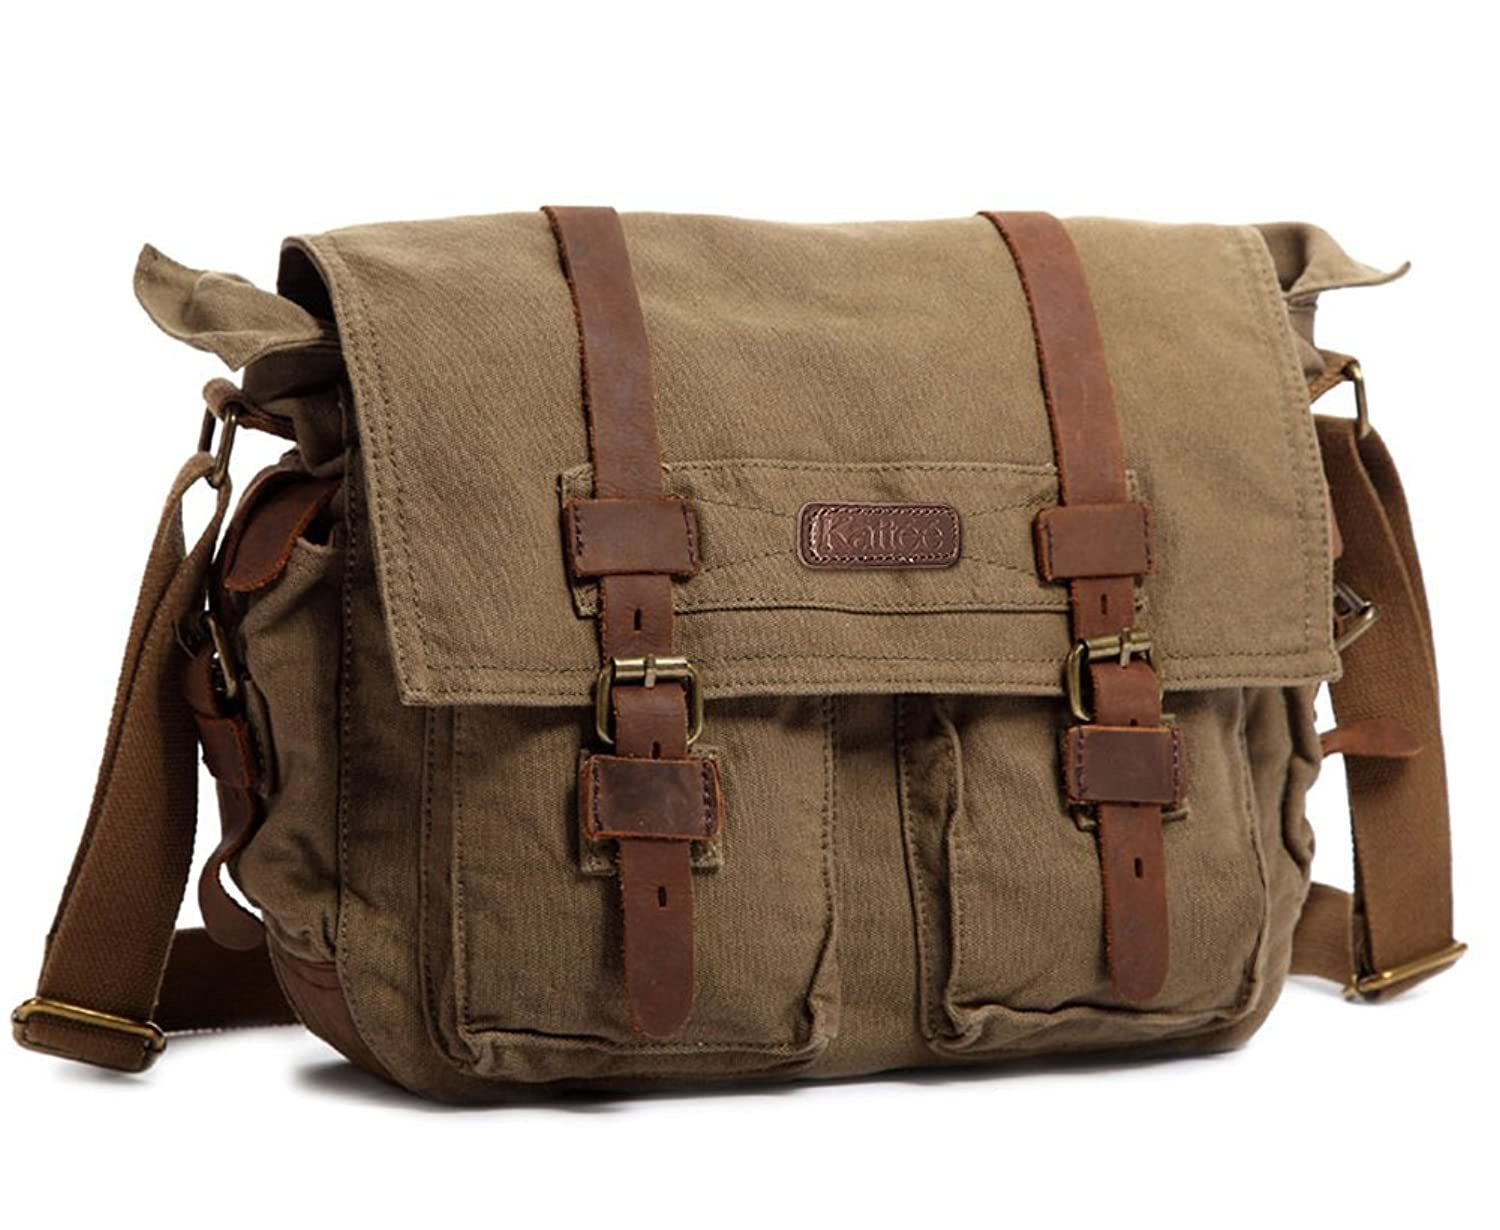 Kattee Men s Vintage Canvas Leather Messenger Shoulder Bag Fits 15 Inch  Laptop (Army Green) fa3bf1131f3